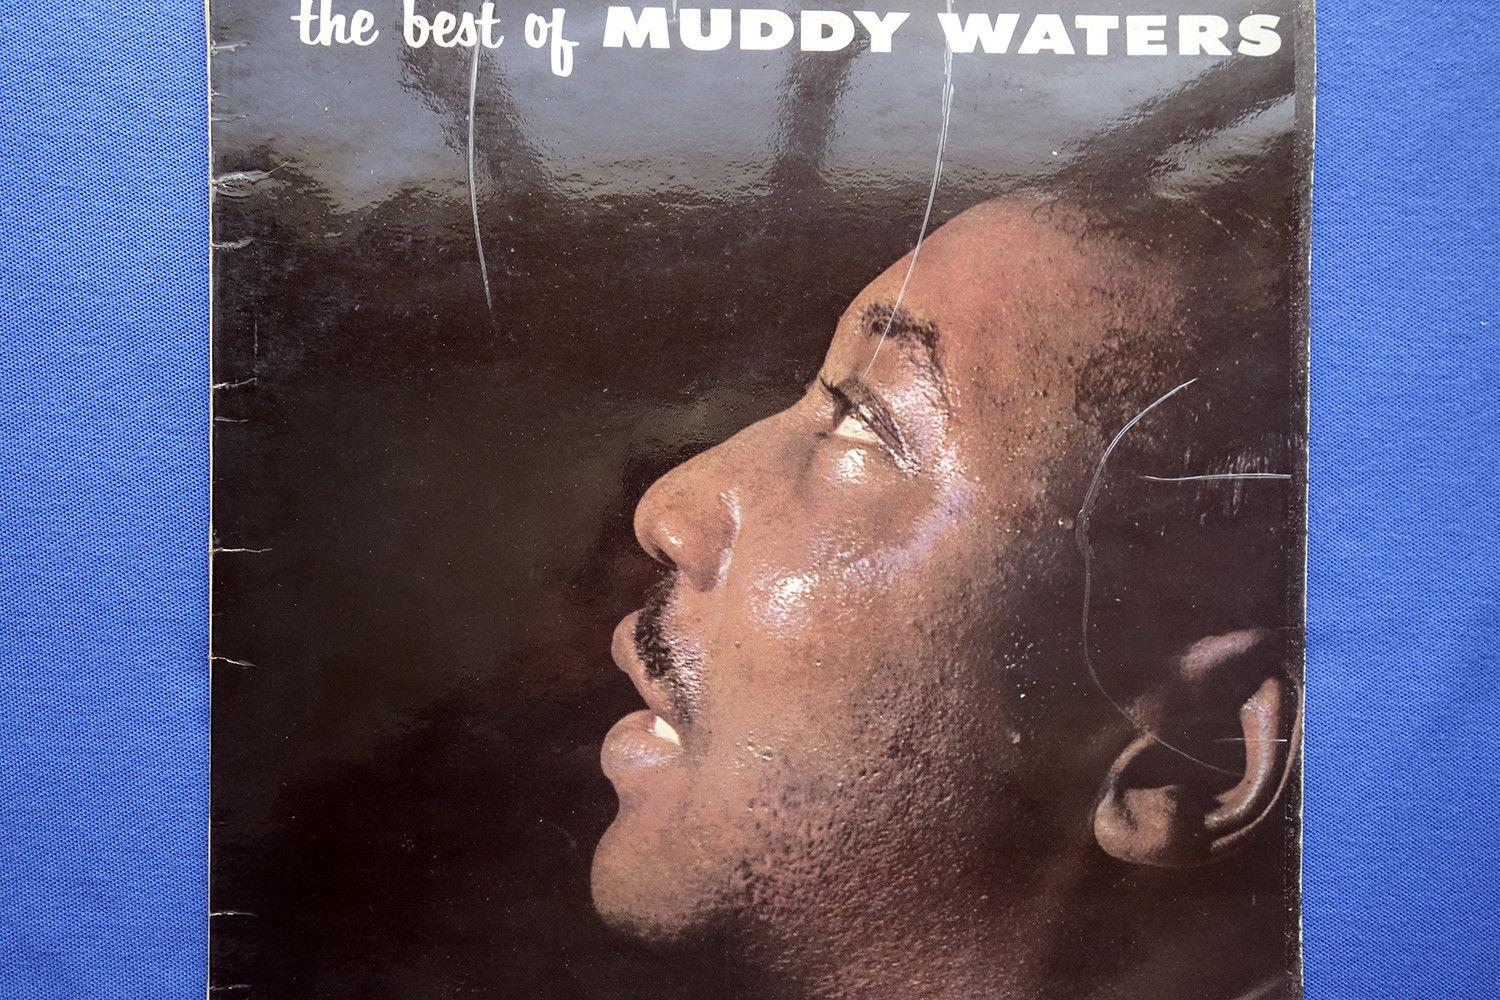 THE BEST OF MUDDY WATERS - UK PYE INTERNATIONAL MONO LP NPL 28040 from 1964